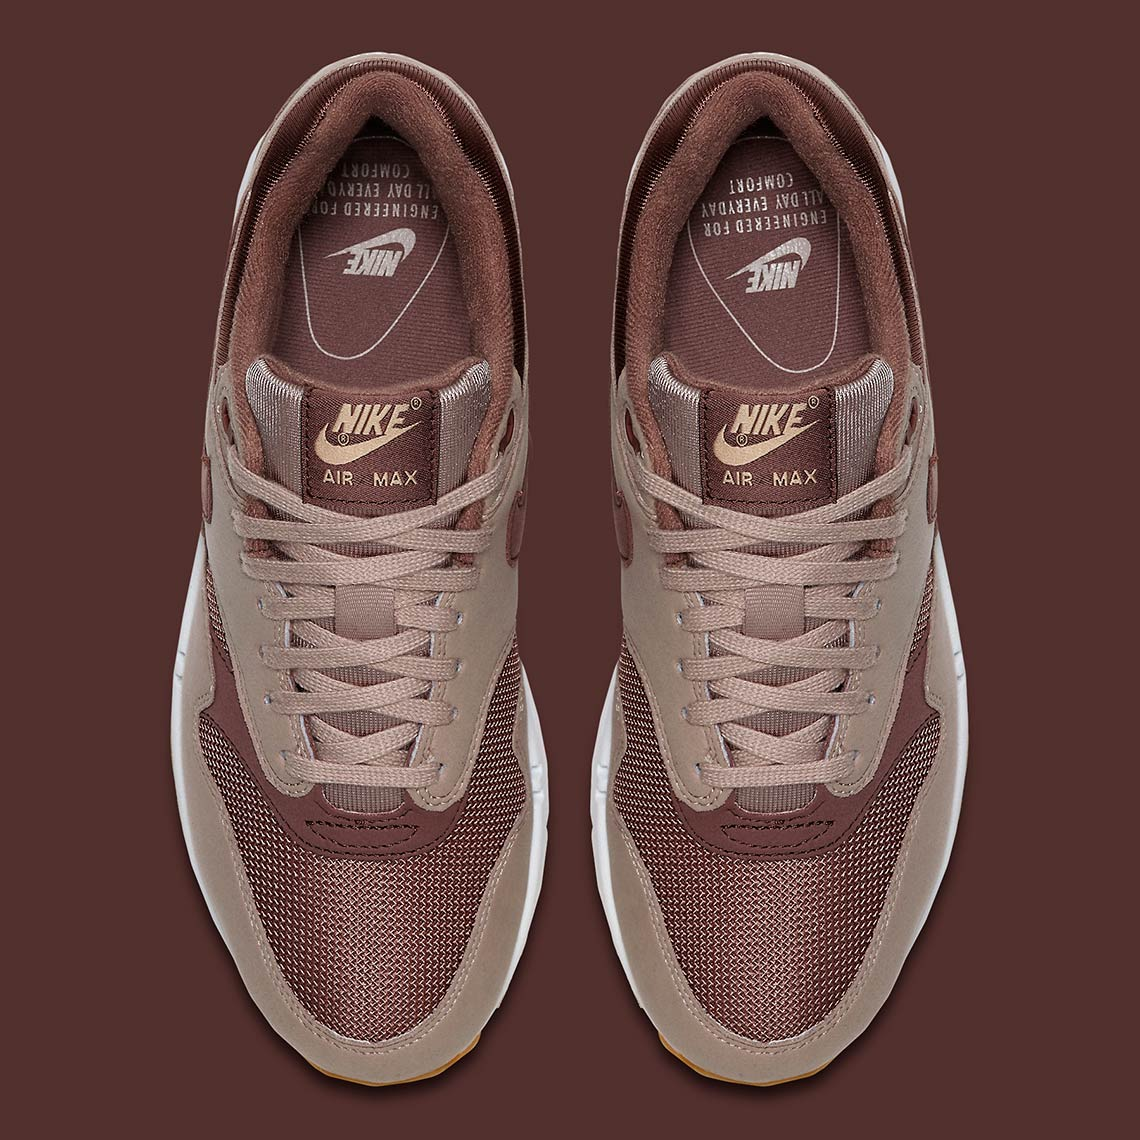 05c19b12995d4 Nike Air Max 1 Women s Diffused Taupe 319986-204 Available Now ...